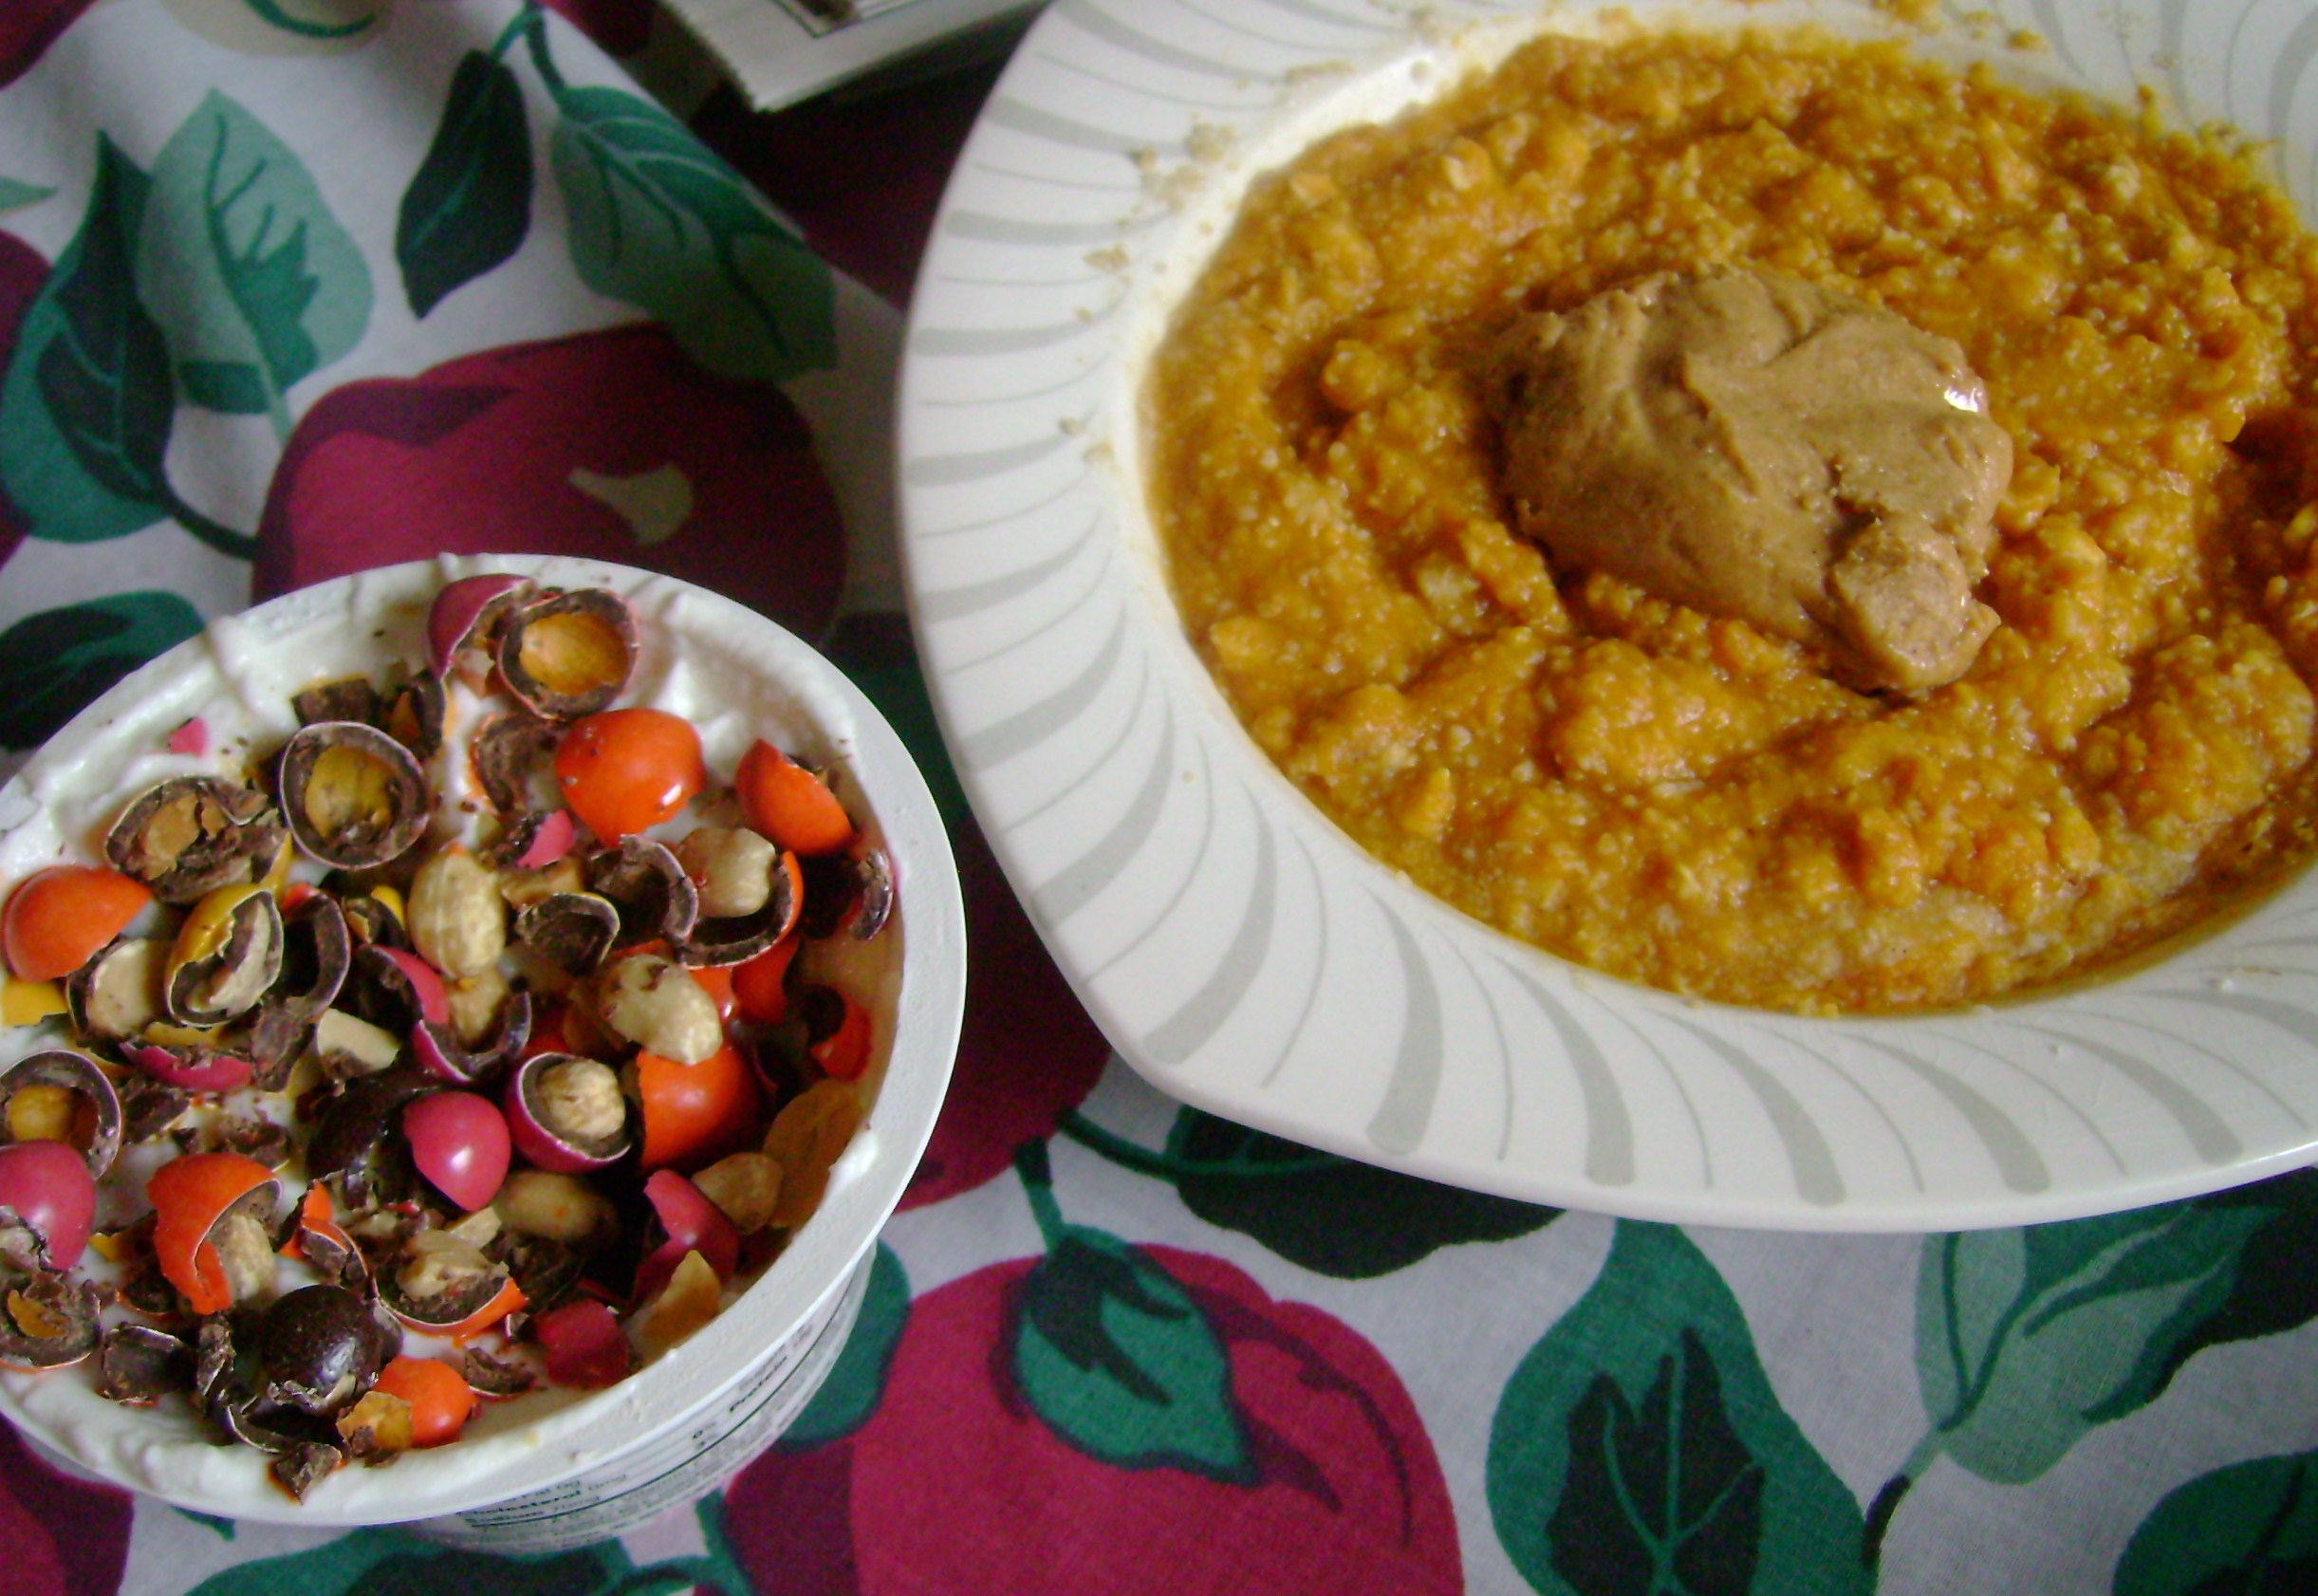 Pumpkin Oatmeal With Butter Toffee PB, Vanilla Cake Chobani With Milk Choc Peanuts